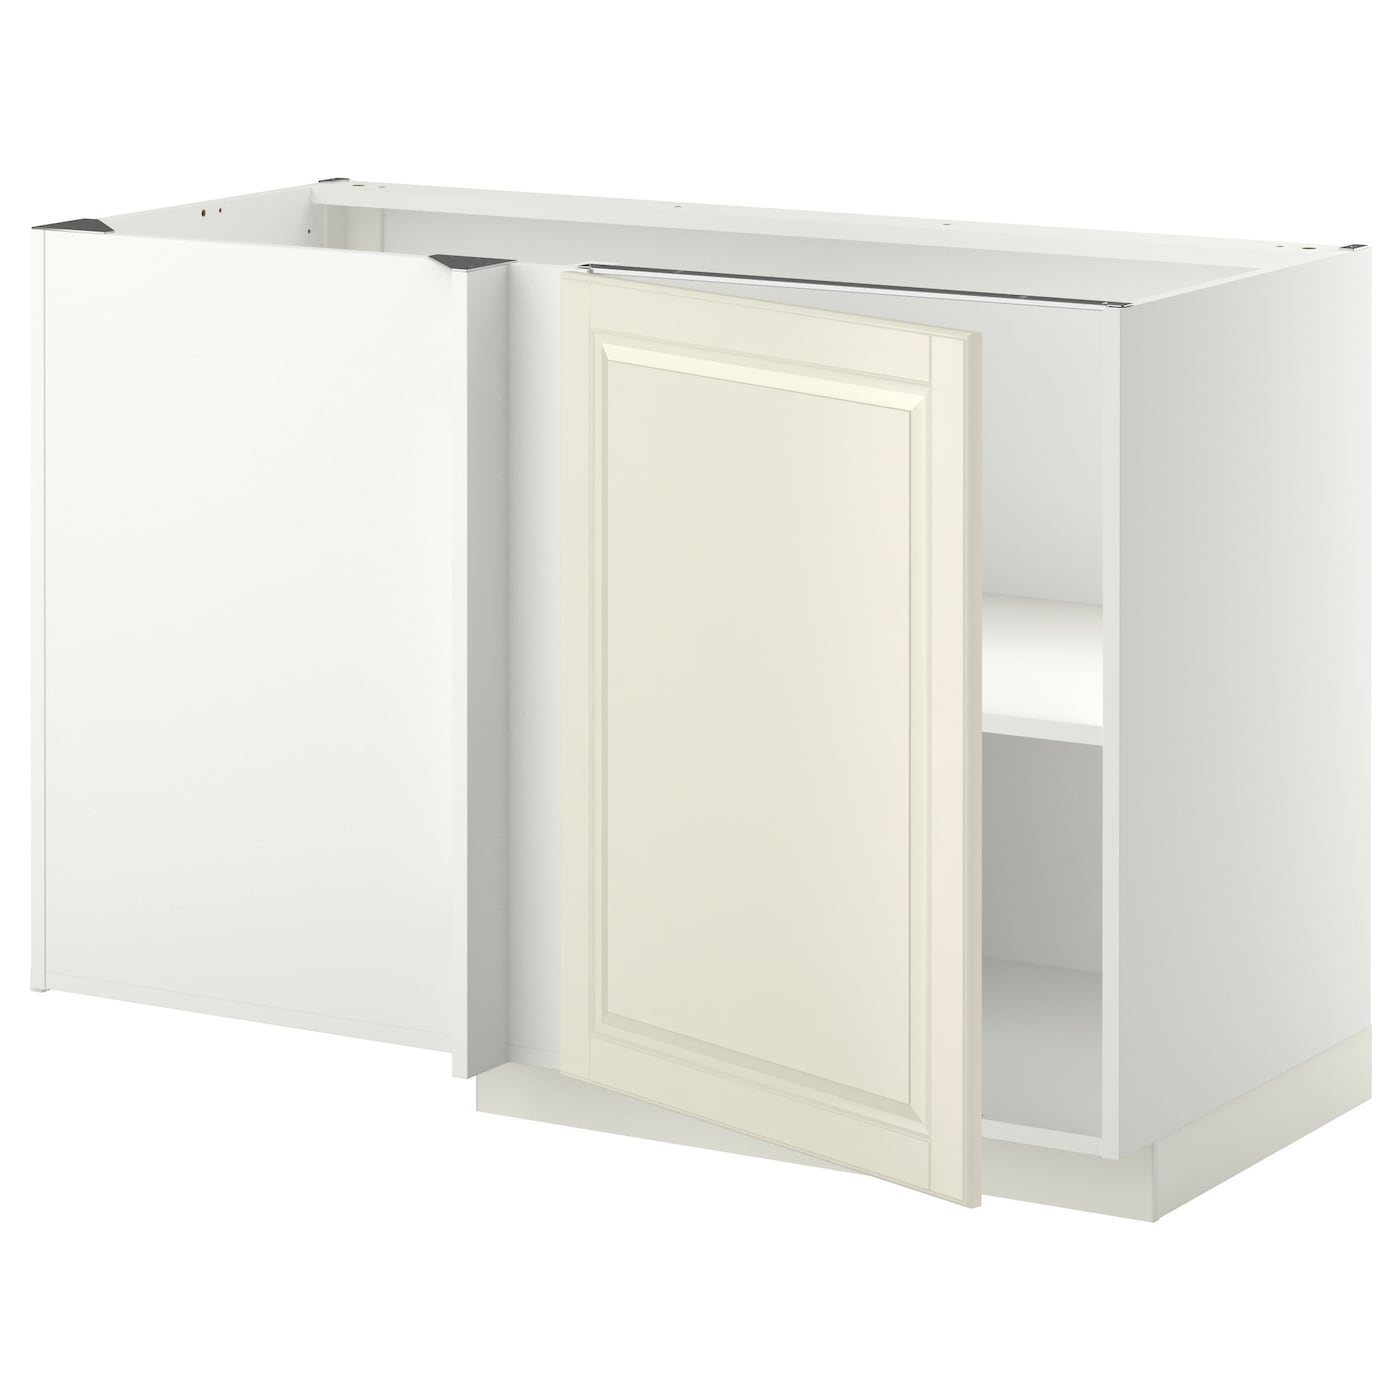 kitchen base corner cabinet metod corner base cabinet with shelf white bodbyn 18154